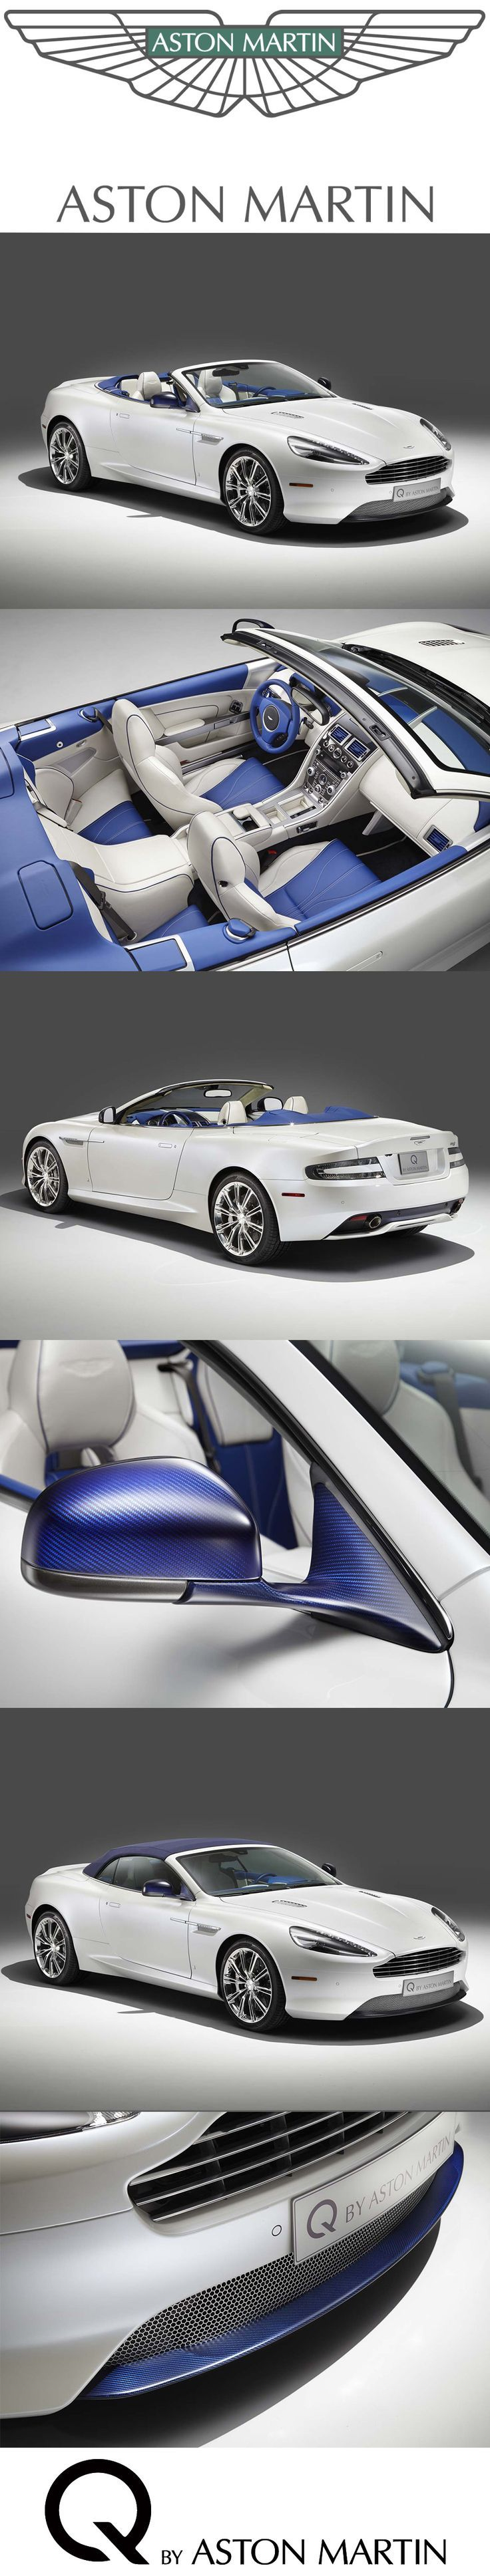 Created with two guiding principles, elegance and purity, this DB9 Volante was commissioned by official dealer Aston Martin Dallas. Challenged to use only white and blue on both exterior and interior, our design team have created a specification which stays true to DB9's timeless elegance but offers a new level of visual distinction. Discover Q by Aston Martin: http://www.astonmartin.com/q #AstonMartin #Q #Vanquish #Personalised: